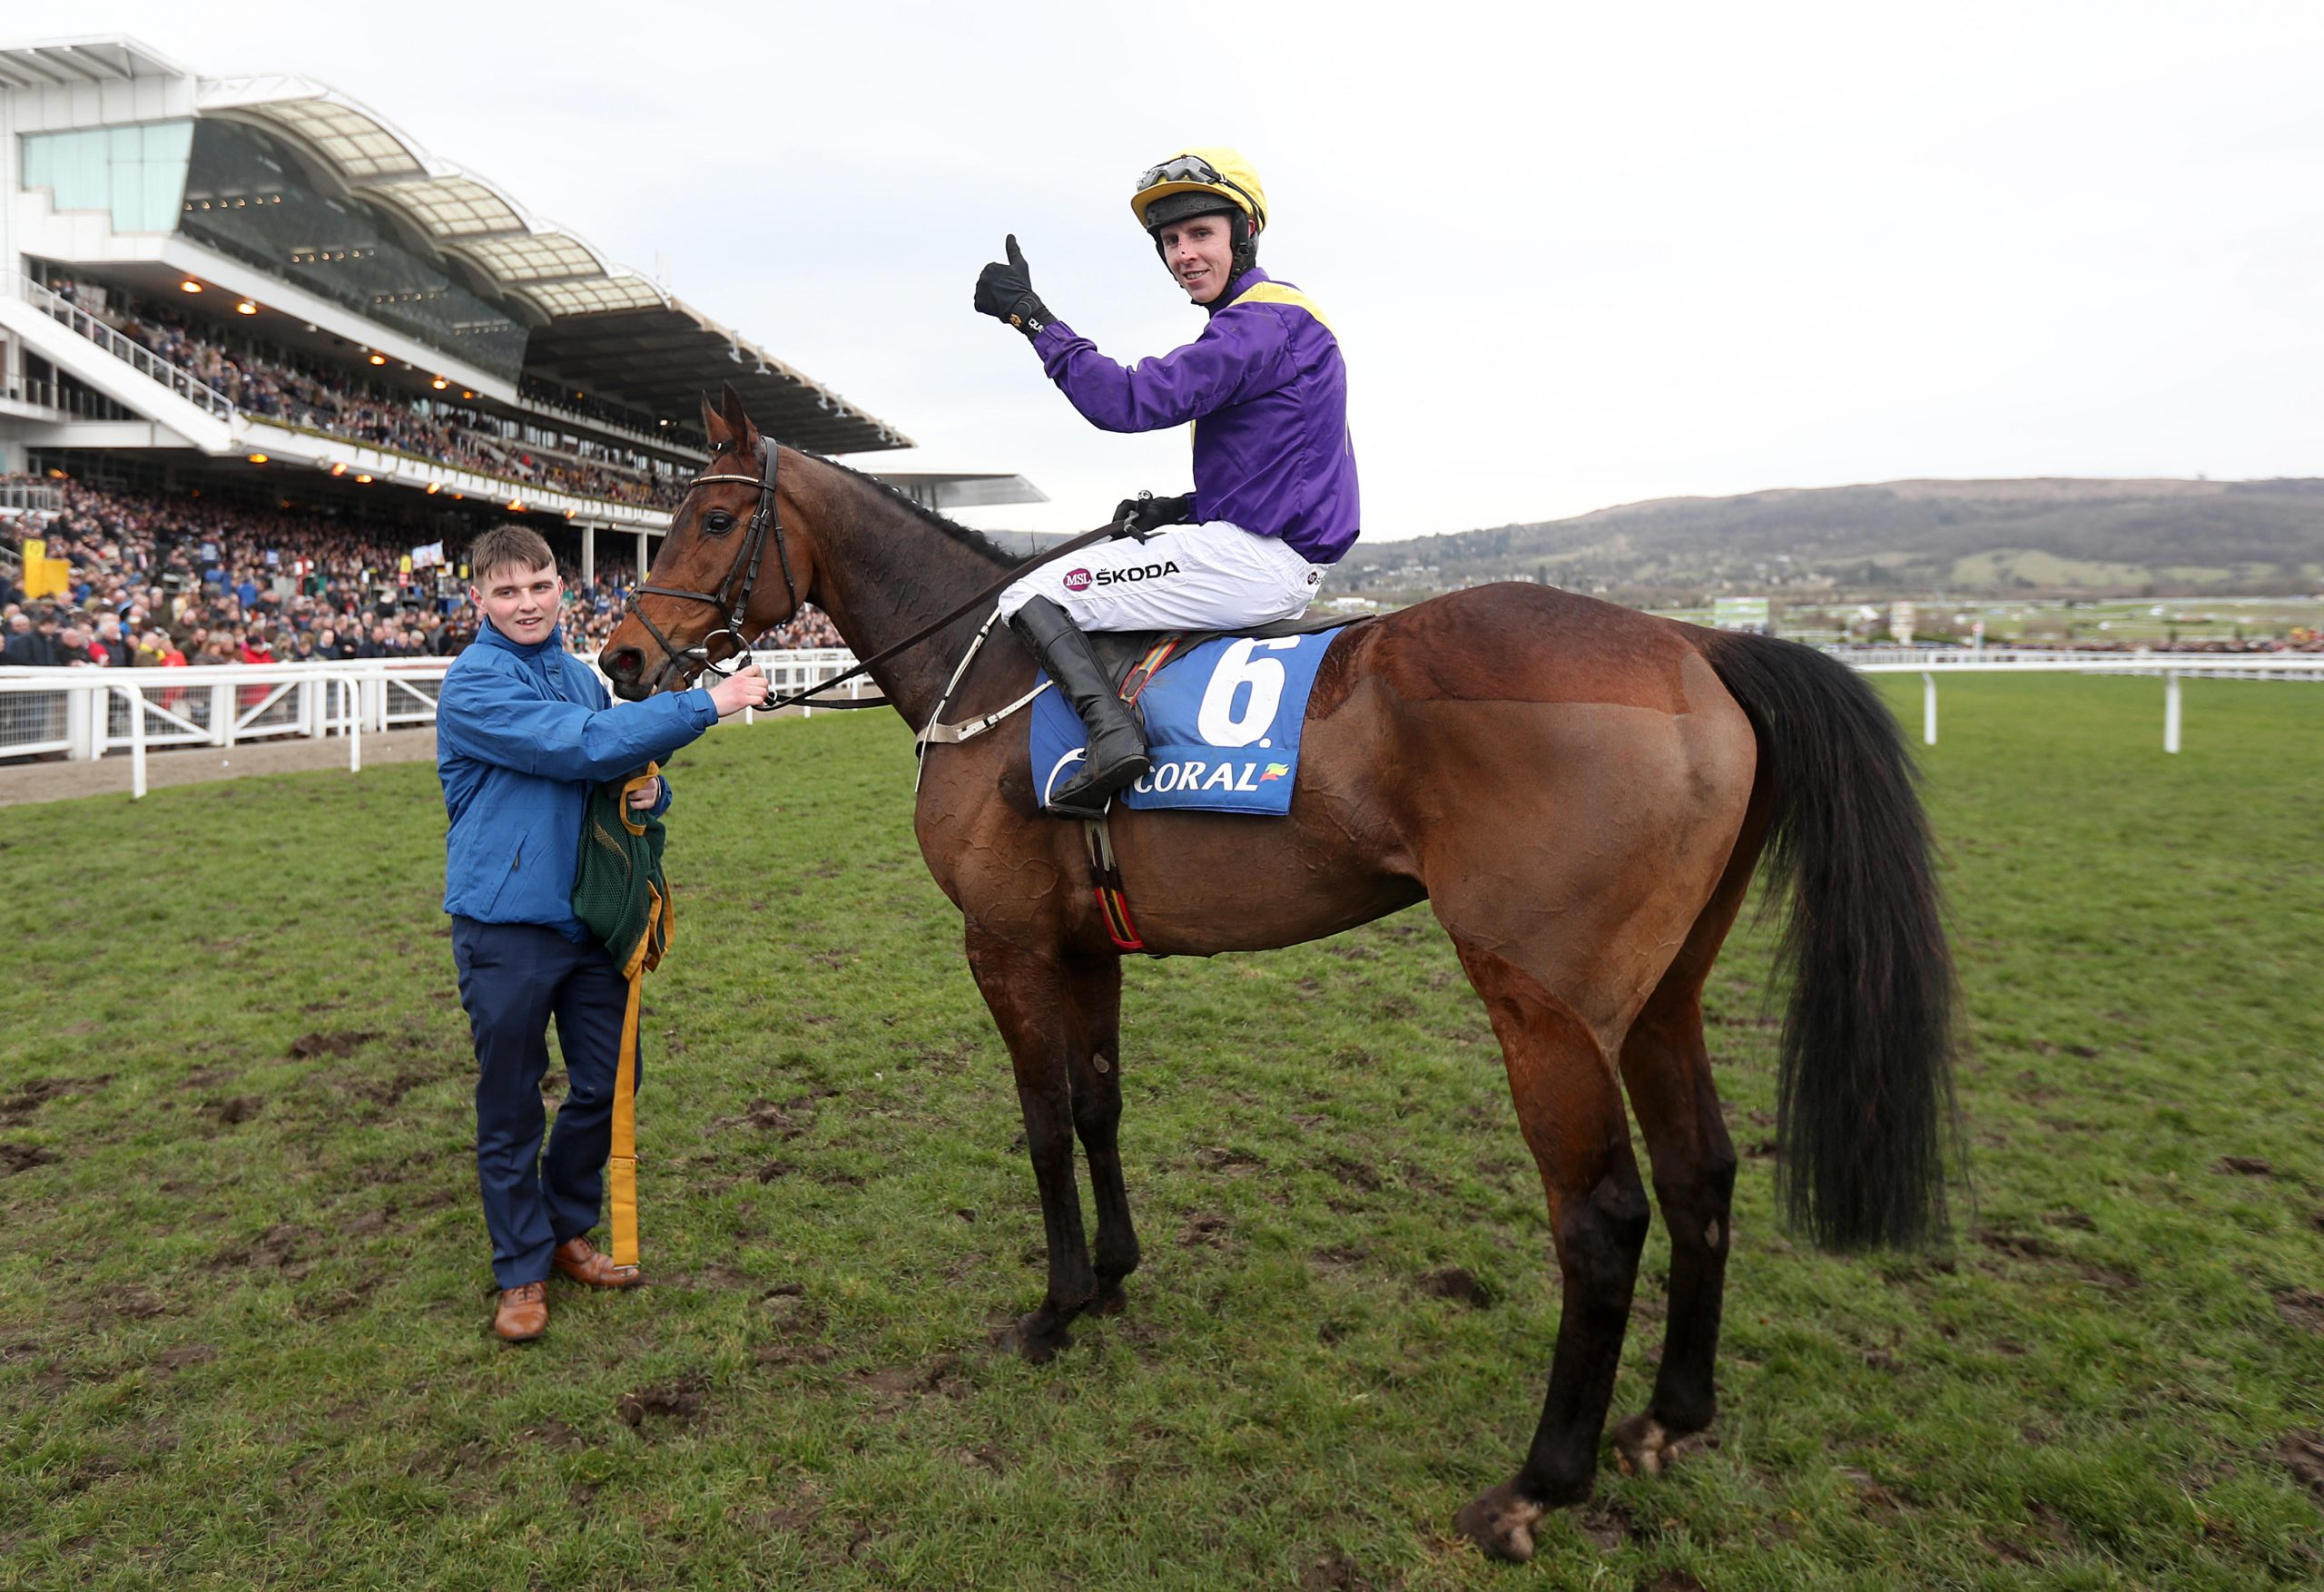 M848M3 Mark Walsh celebrates on Bleu Berry after winning the Coral Cup Handicap Hurdle during Ladies Day of the 2018 Cheltenham Festival at Cheltenham Racecourse.